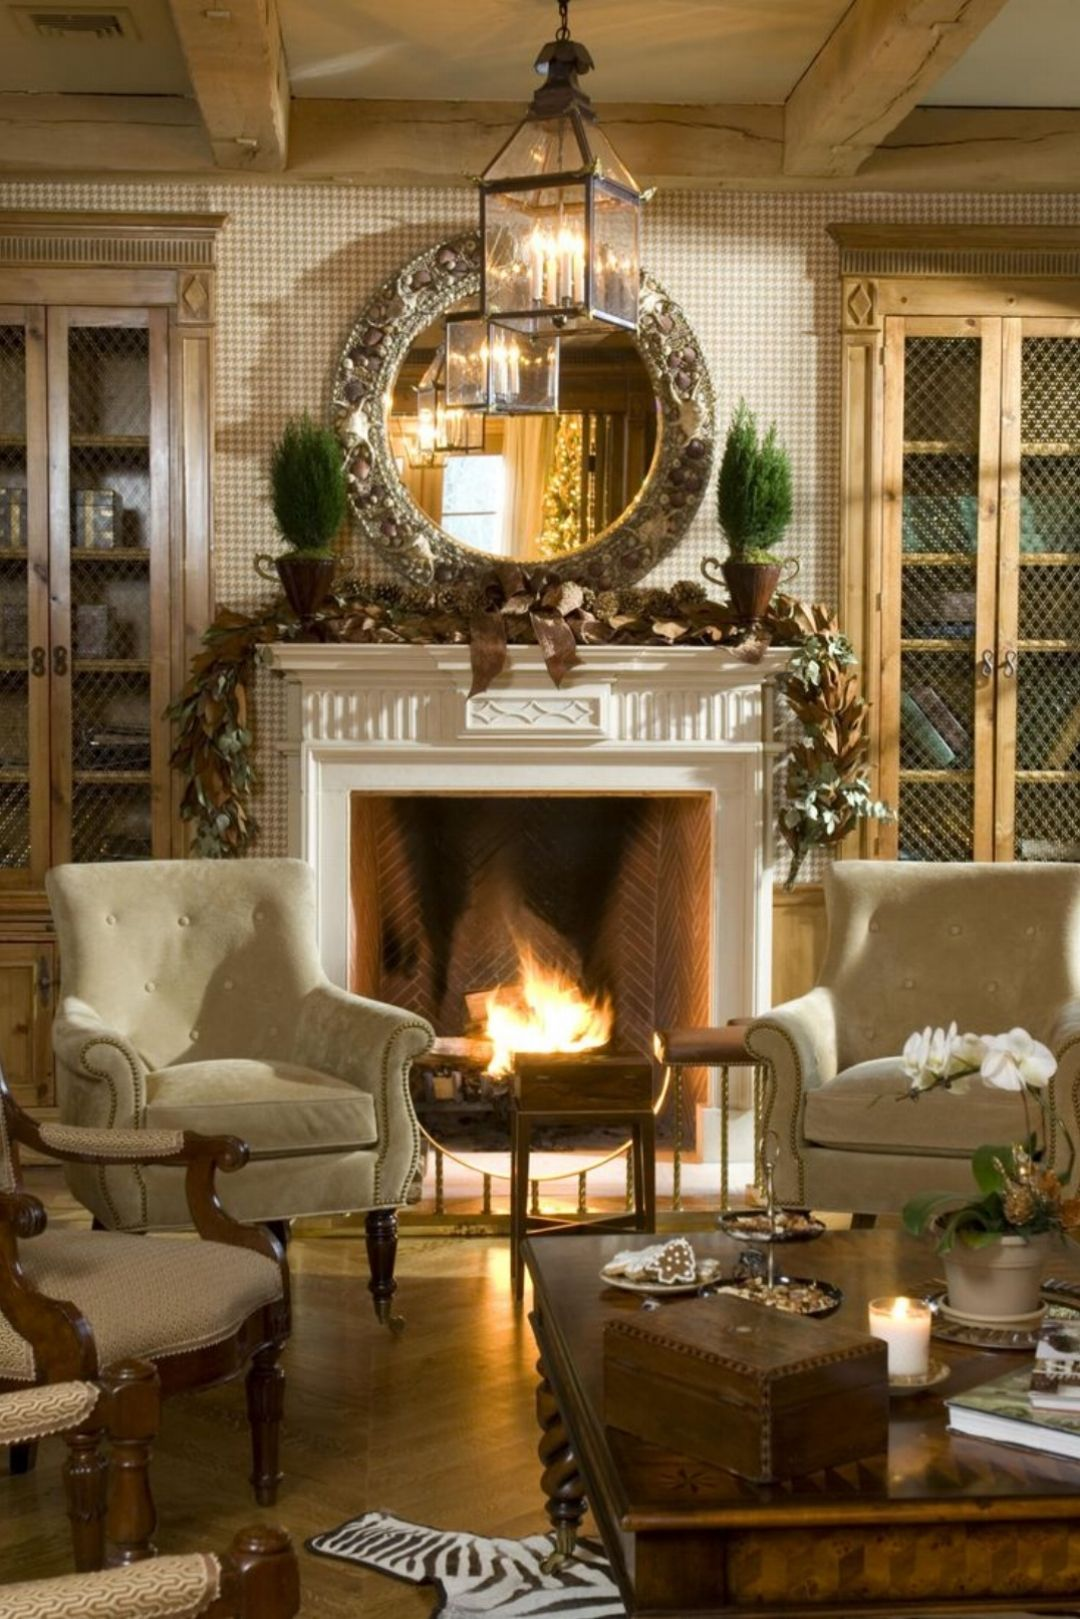 Traditional Victorian Colonial Living Room By Timothy Corrigan With Images: Home Decor, Home, Christmas Mantels